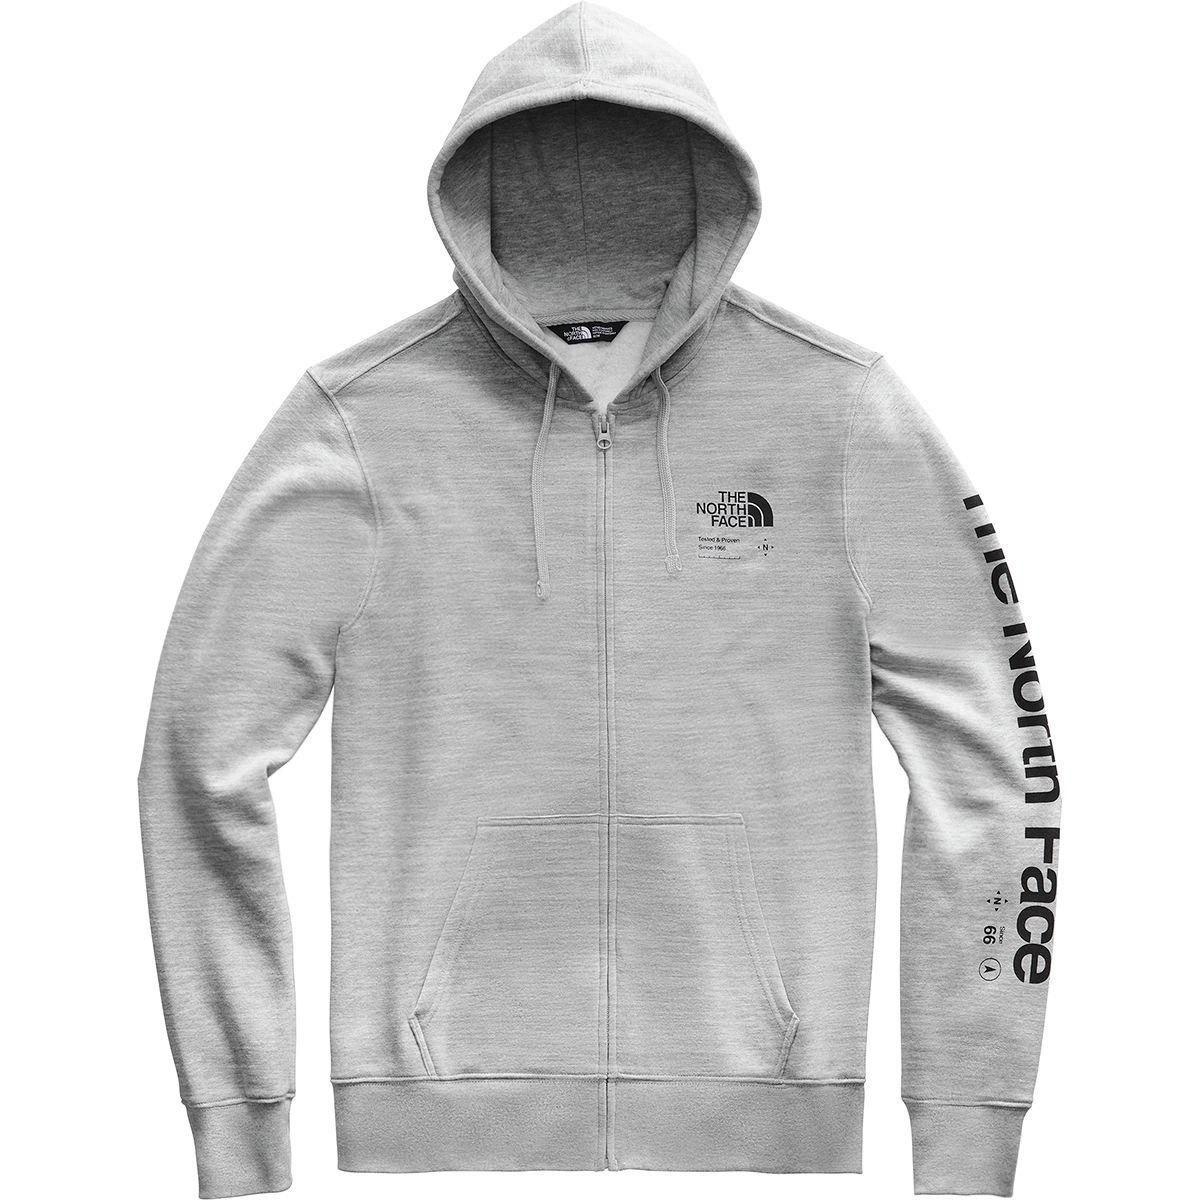 67f73748f Lyst - The North Face Half Dome Explore Full-zip Hoodie in Gray for Men